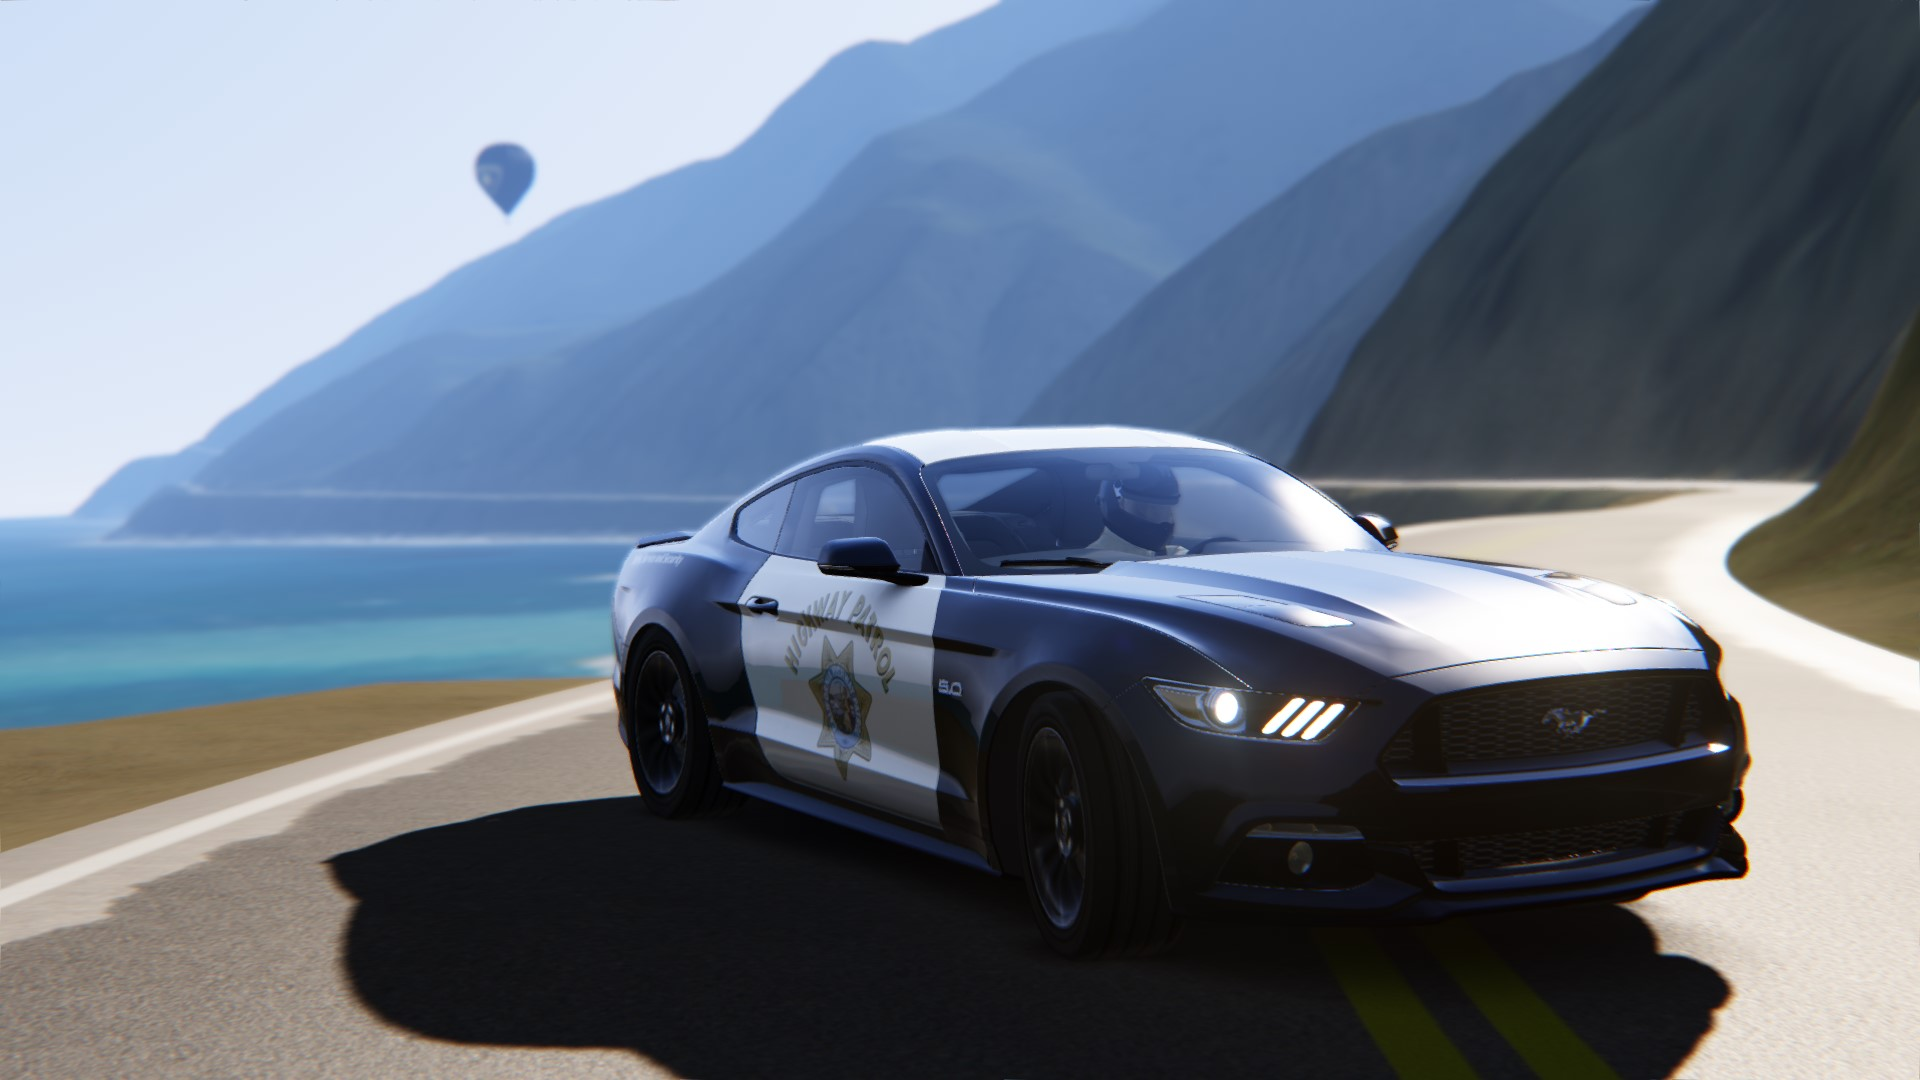 Screenshot_ks_ford_mustang_2015_pacific_coast_27-10-116-21-56-35.jpg